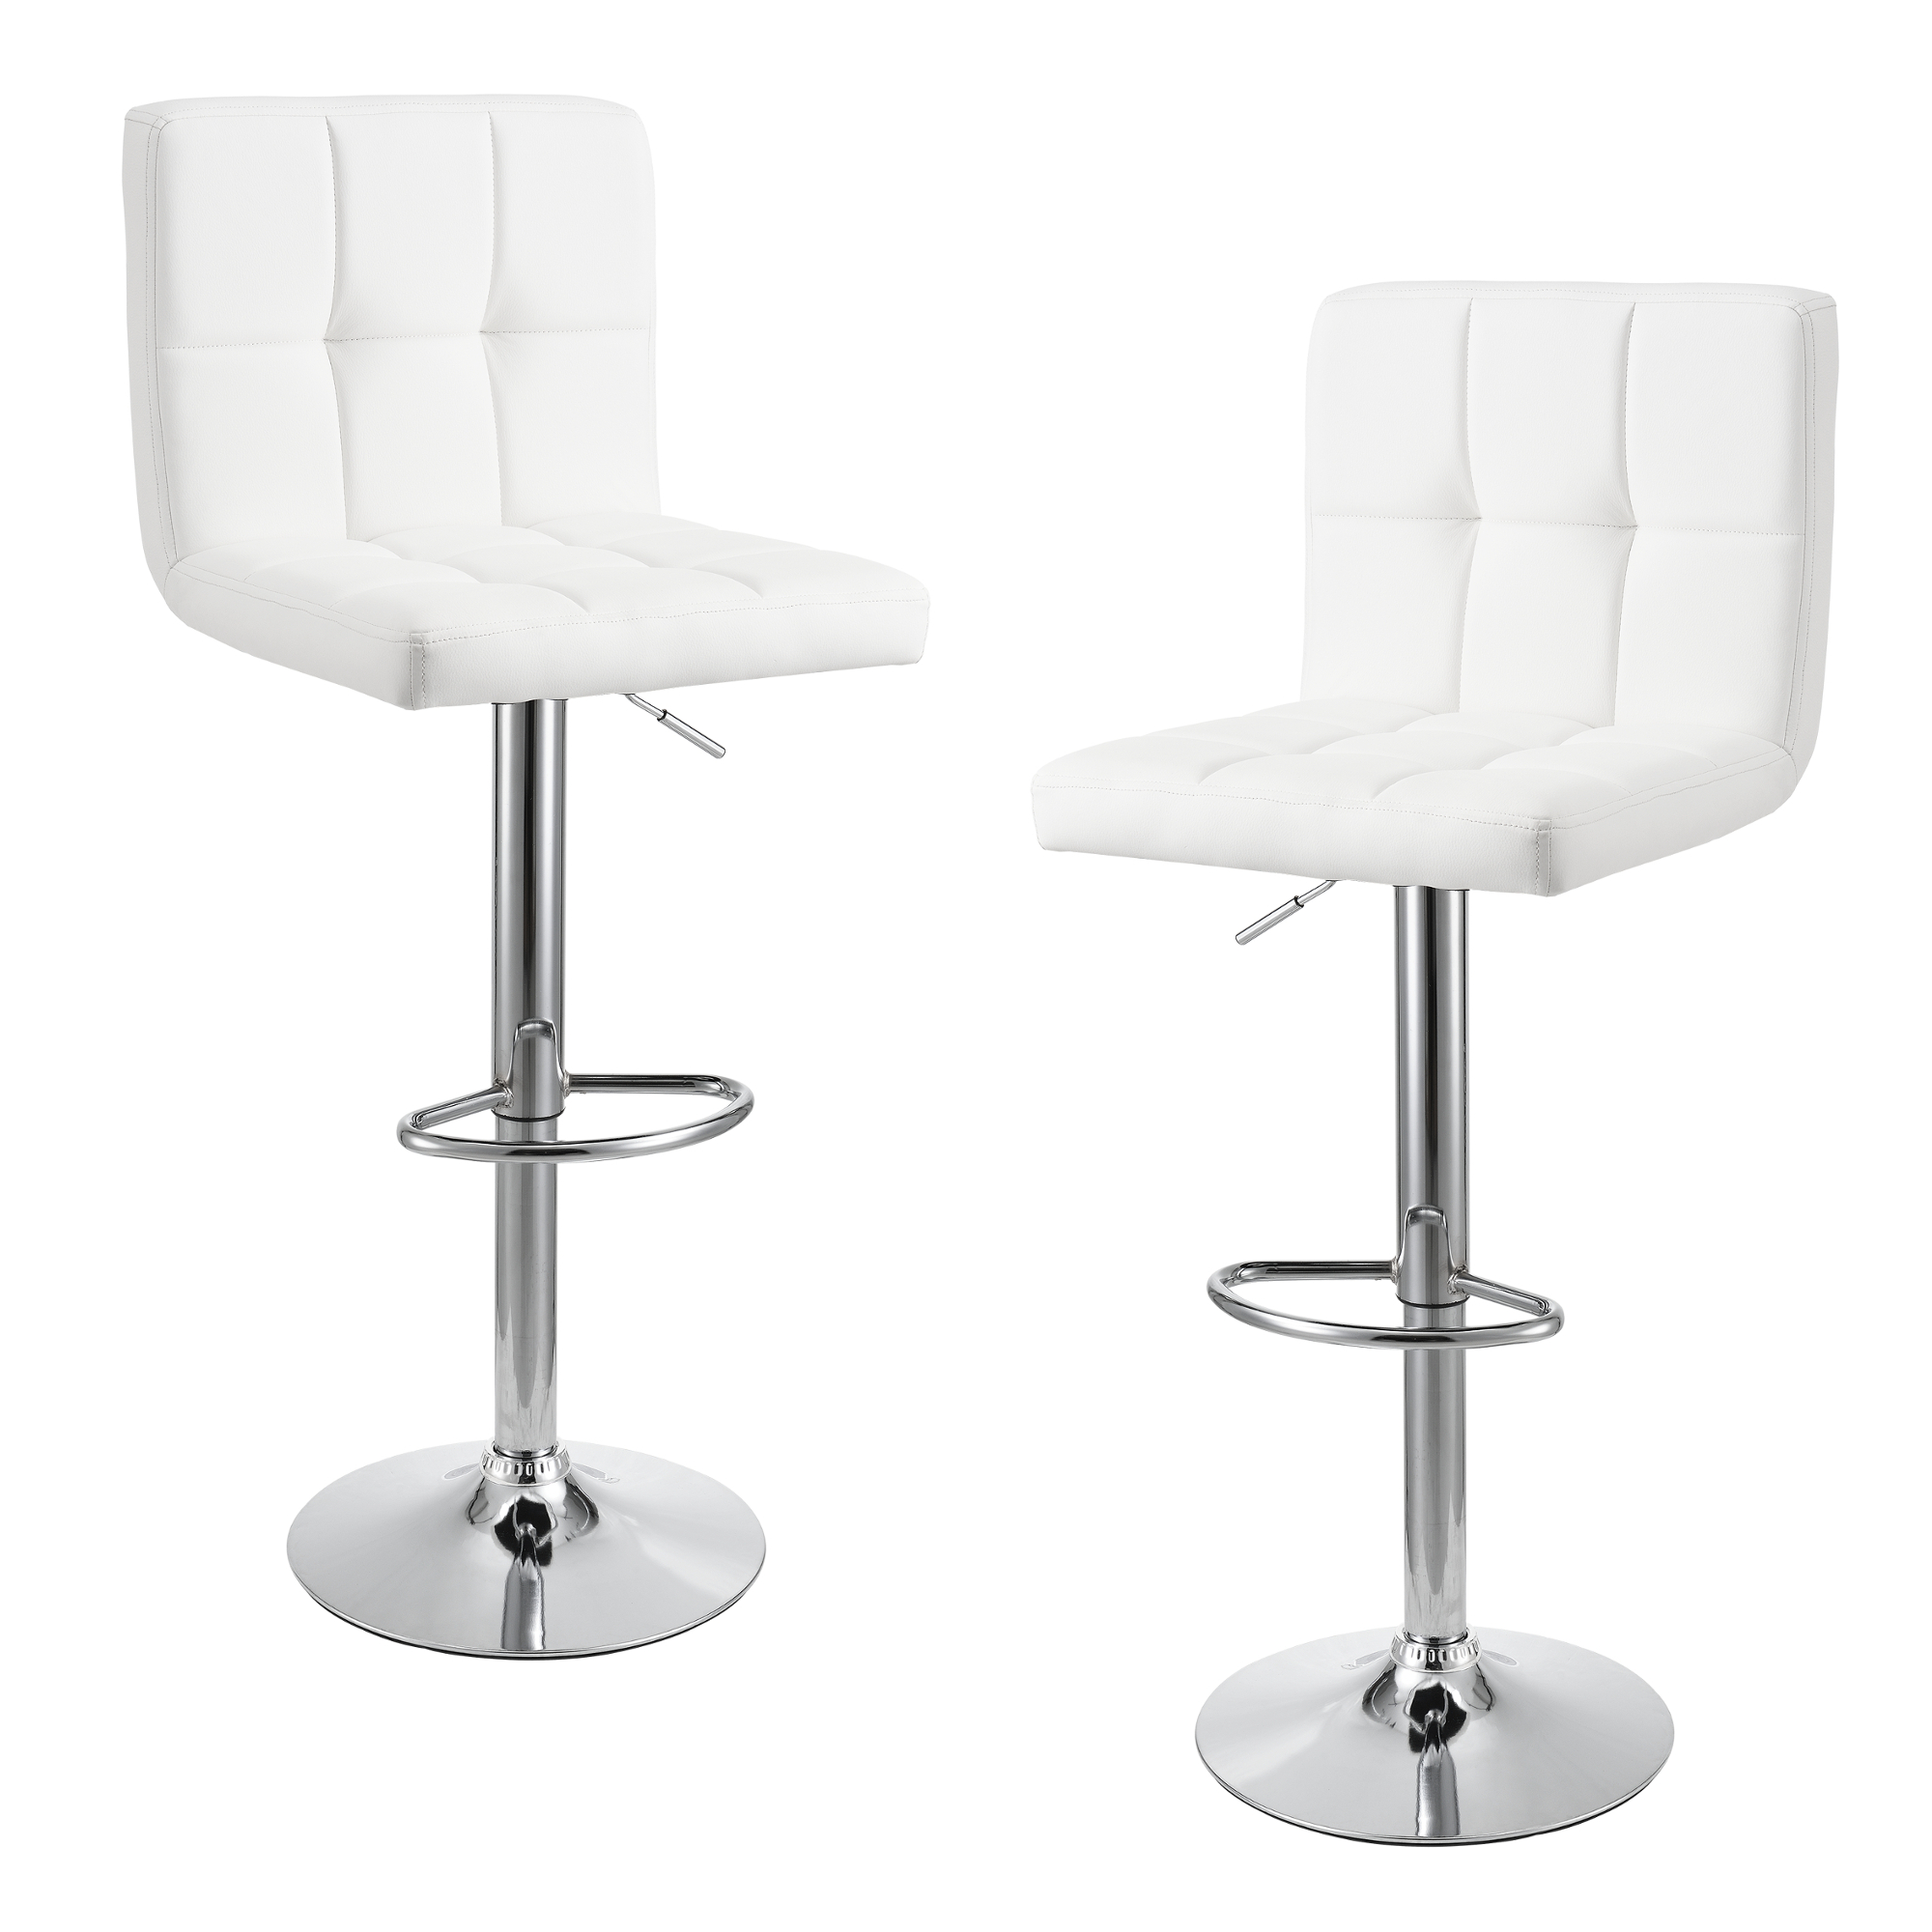 tabouret de bar blanc ensemble deux comptoir chaise ebay. Black Bedroom Furniture Sets. Home Design Ideas